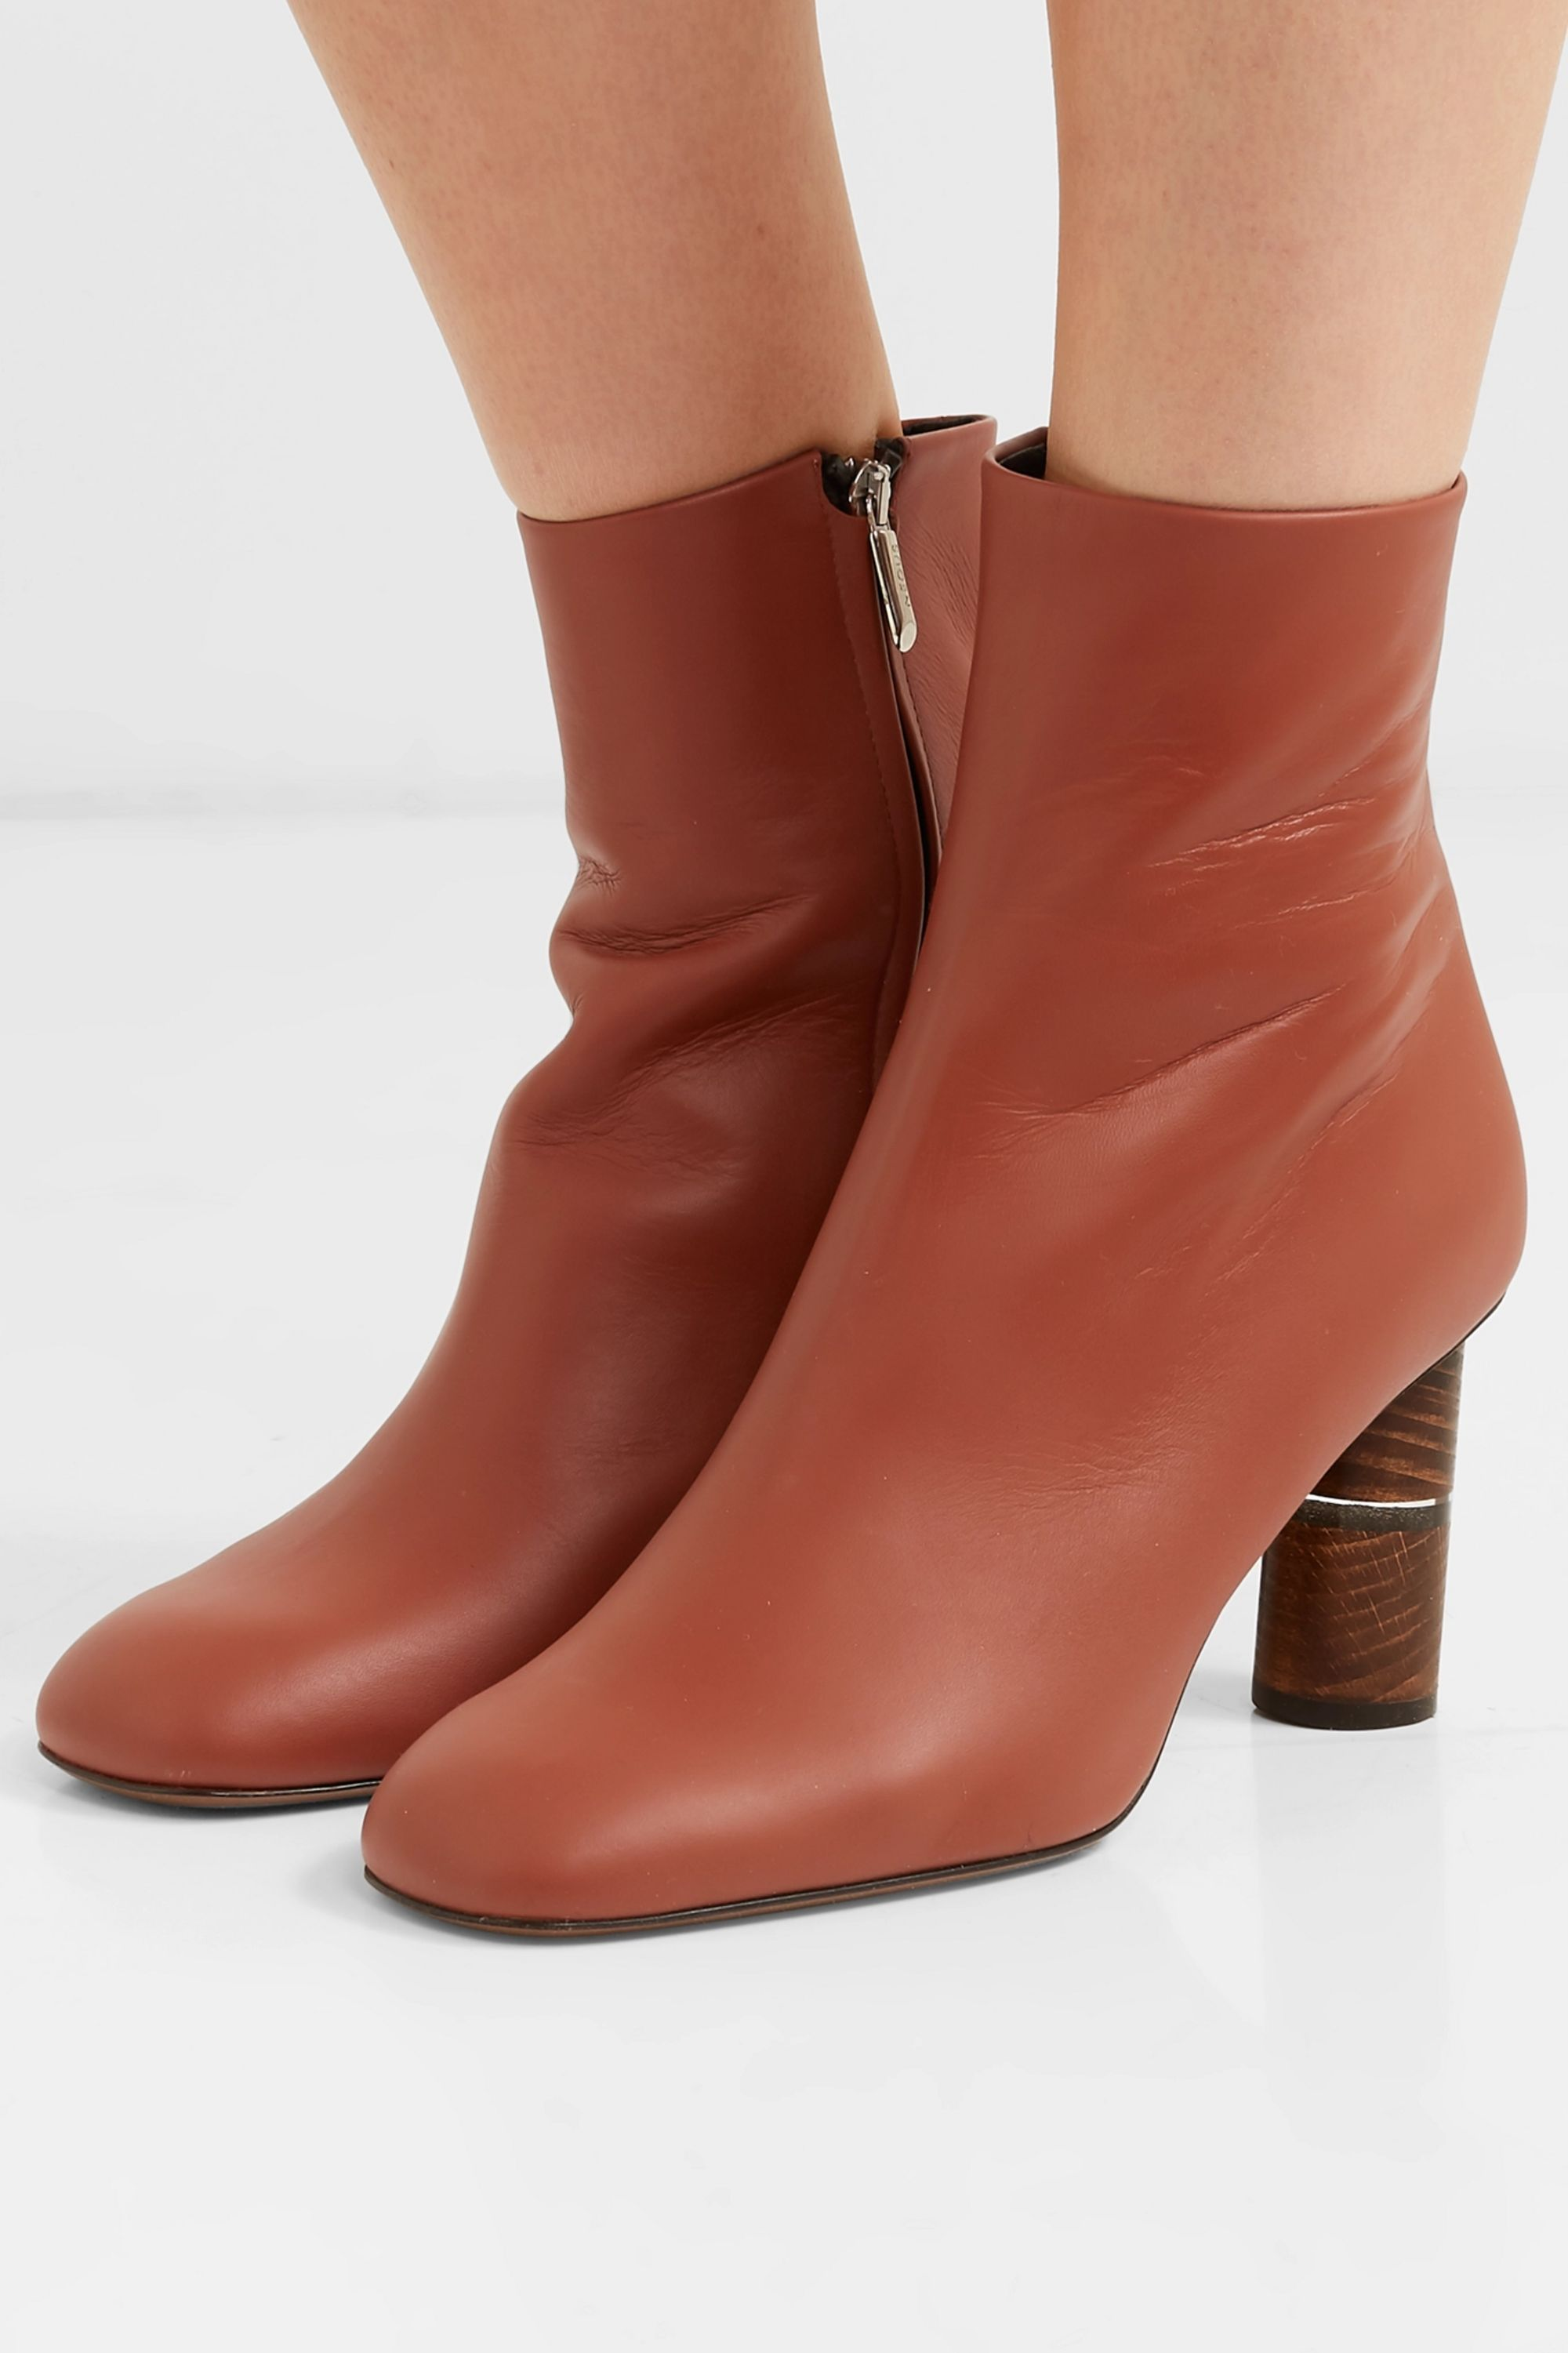 Neous Clowesia leather ankle boots